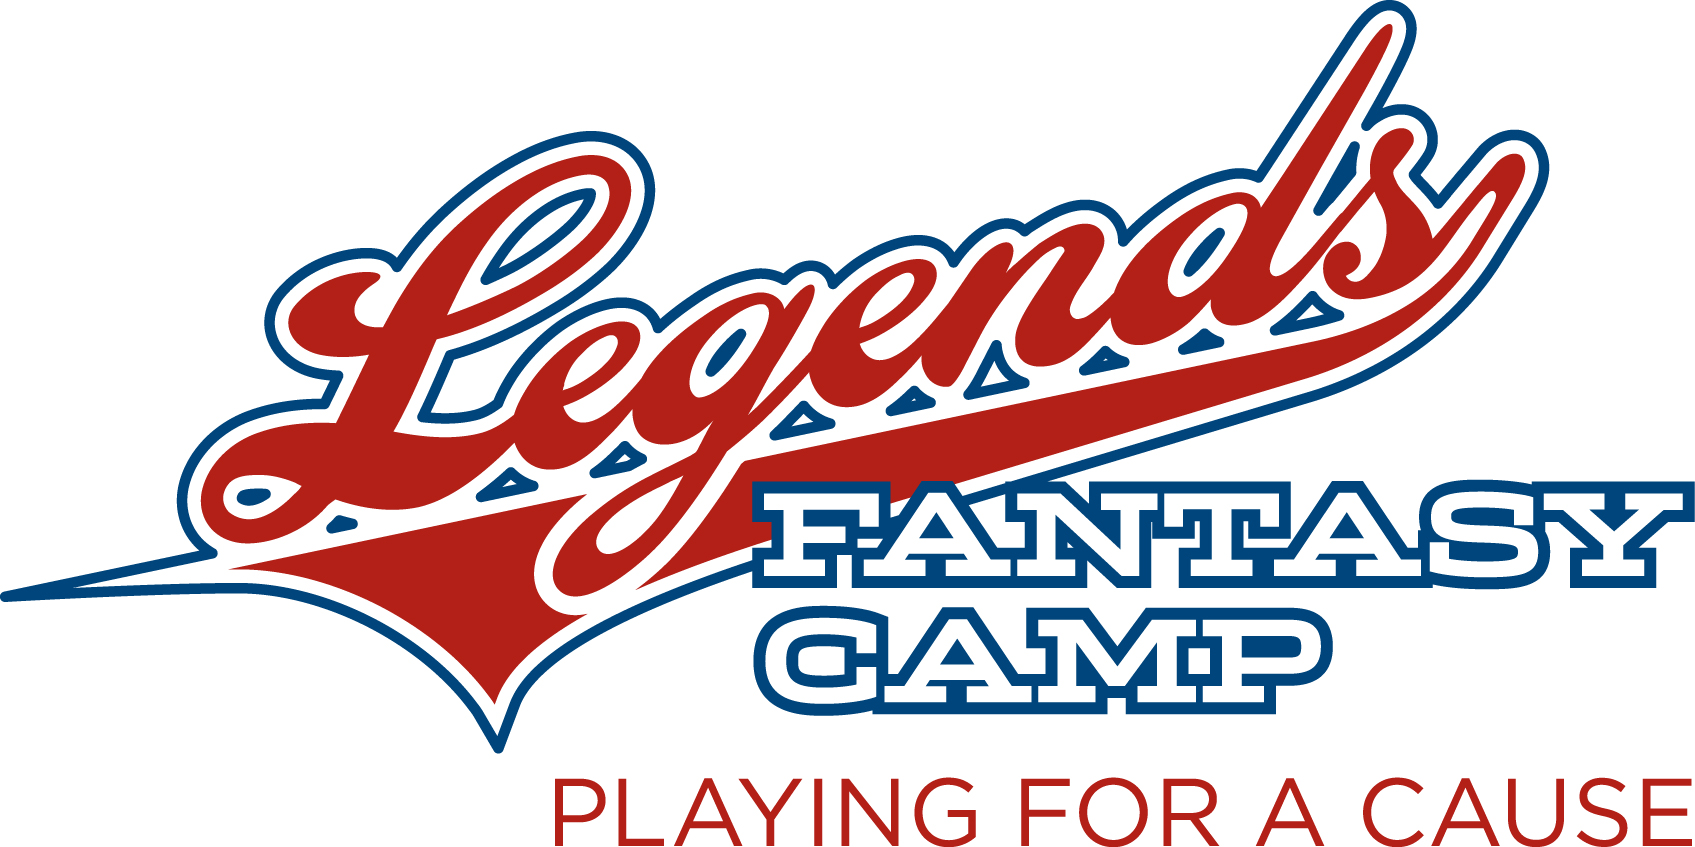 https://www.joeniekrofoundation.com/aneurysms/a-week-with-the-legends/attachment/legends-logo-color-slogan/